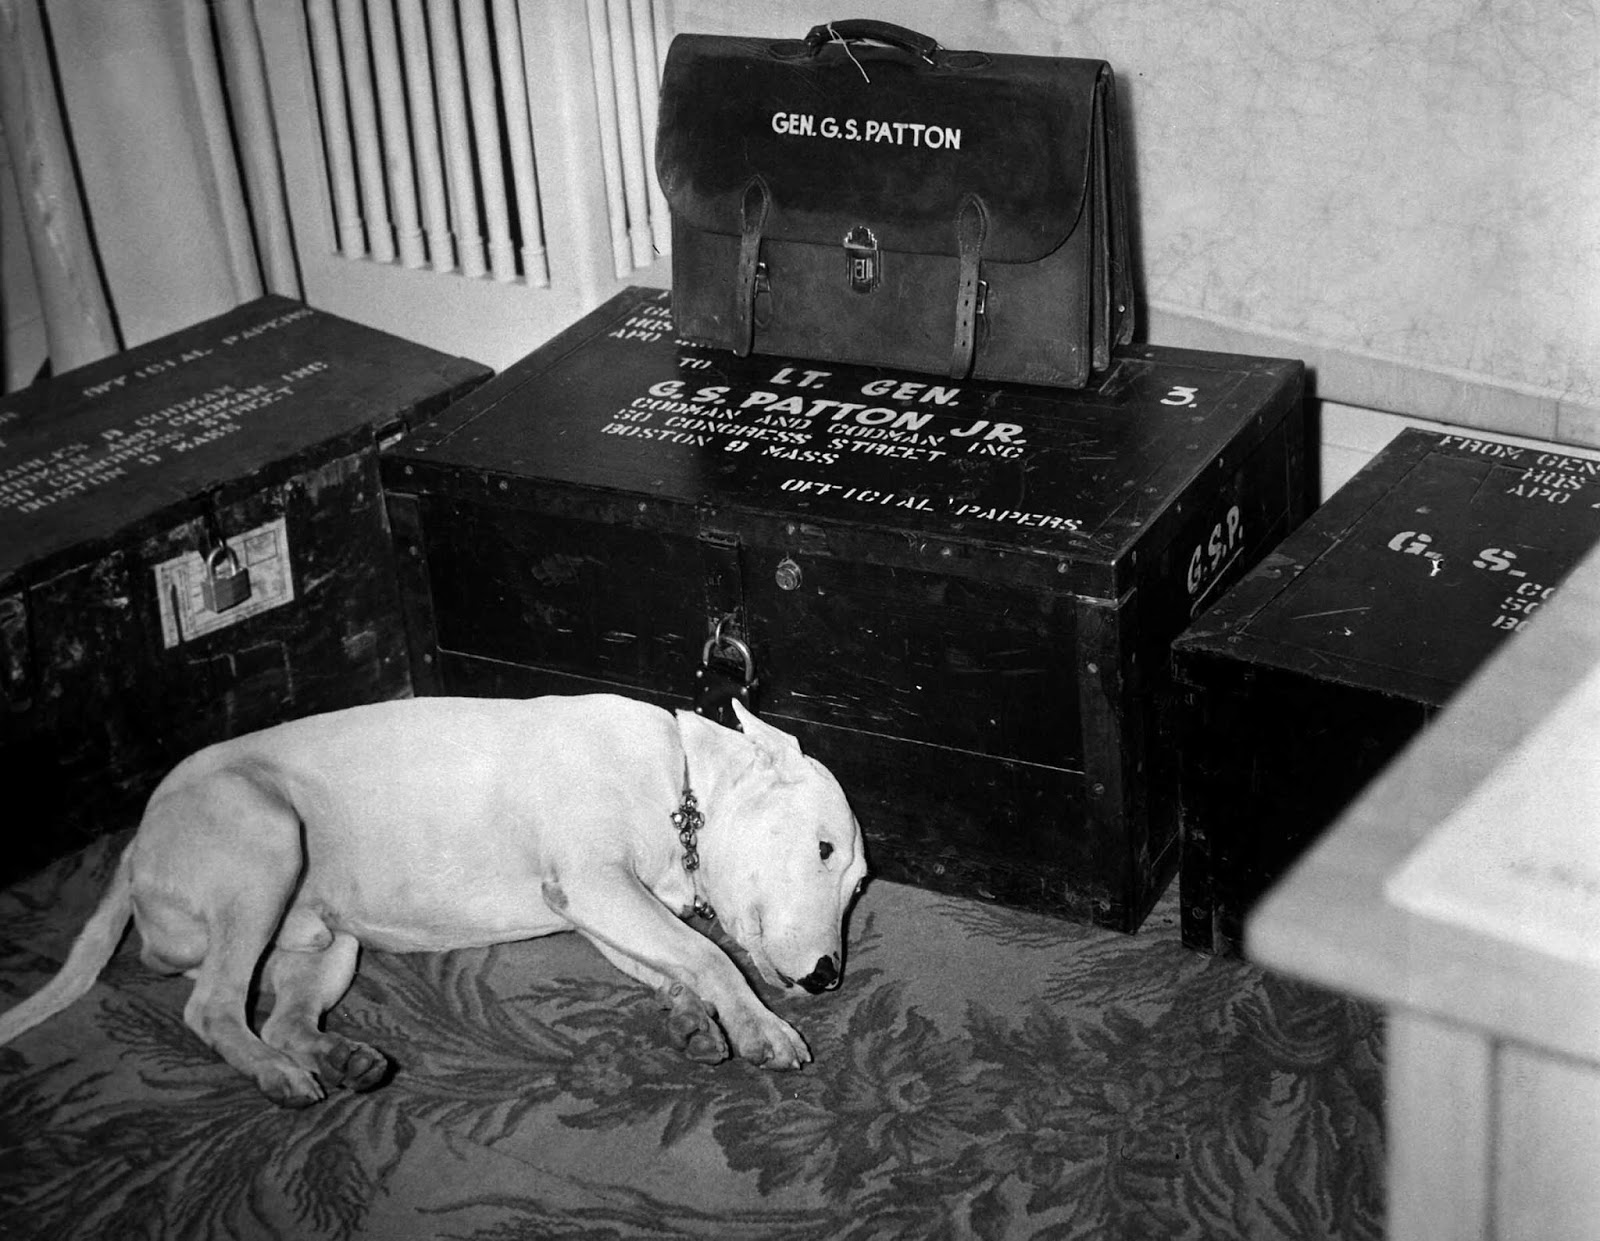 Willie standing by Patton's belongings, 1945.